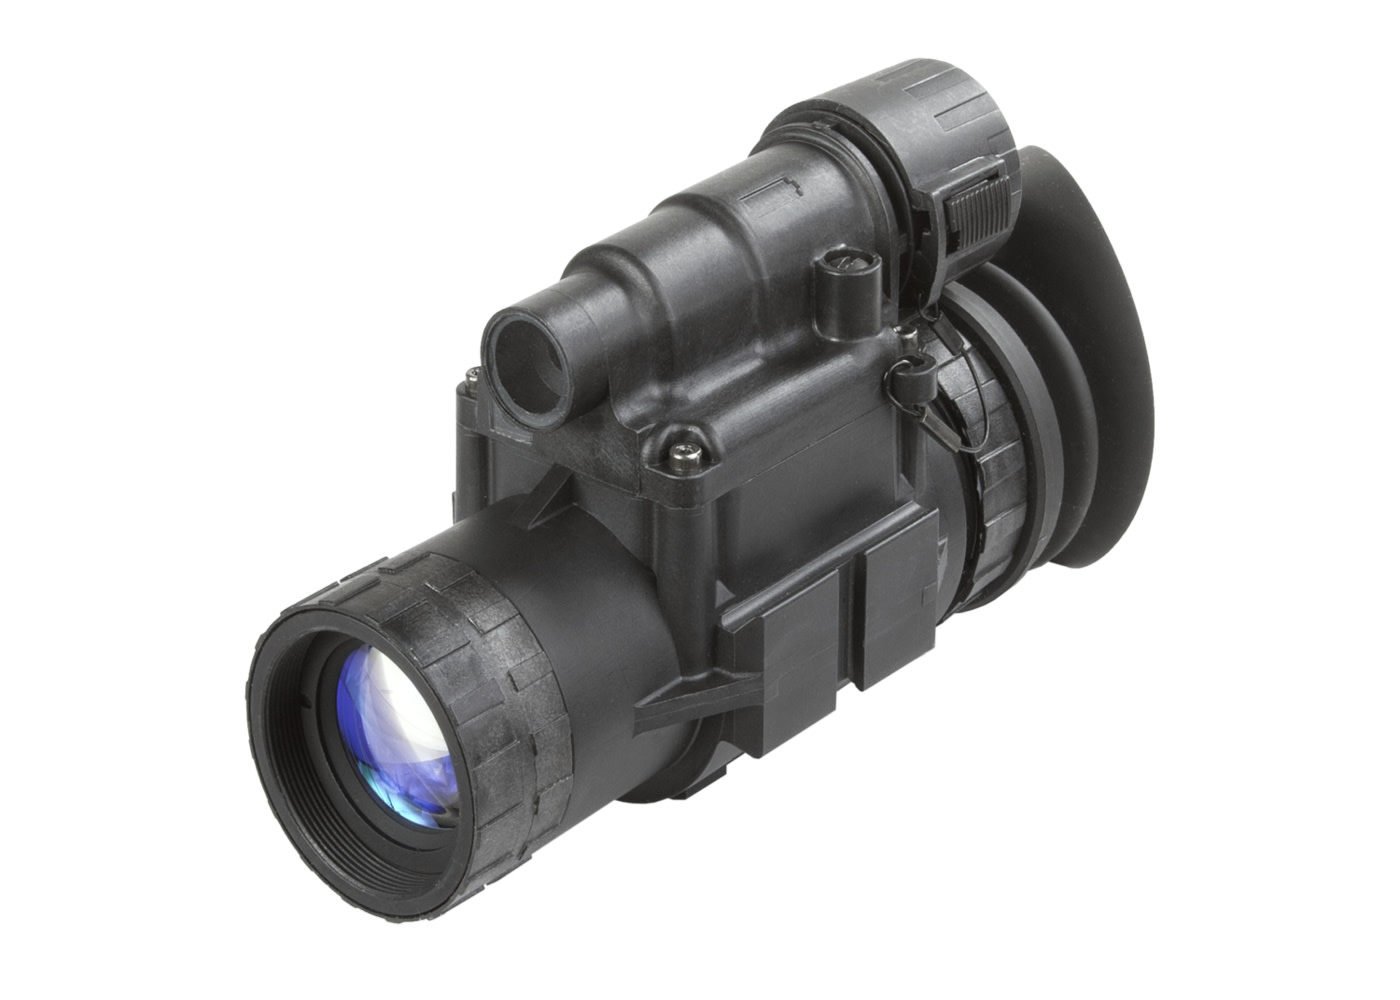 PRG Defense MUM-14A 3NL2 Mil Spec Night Vision Monocular - Gen 3+ Level 2